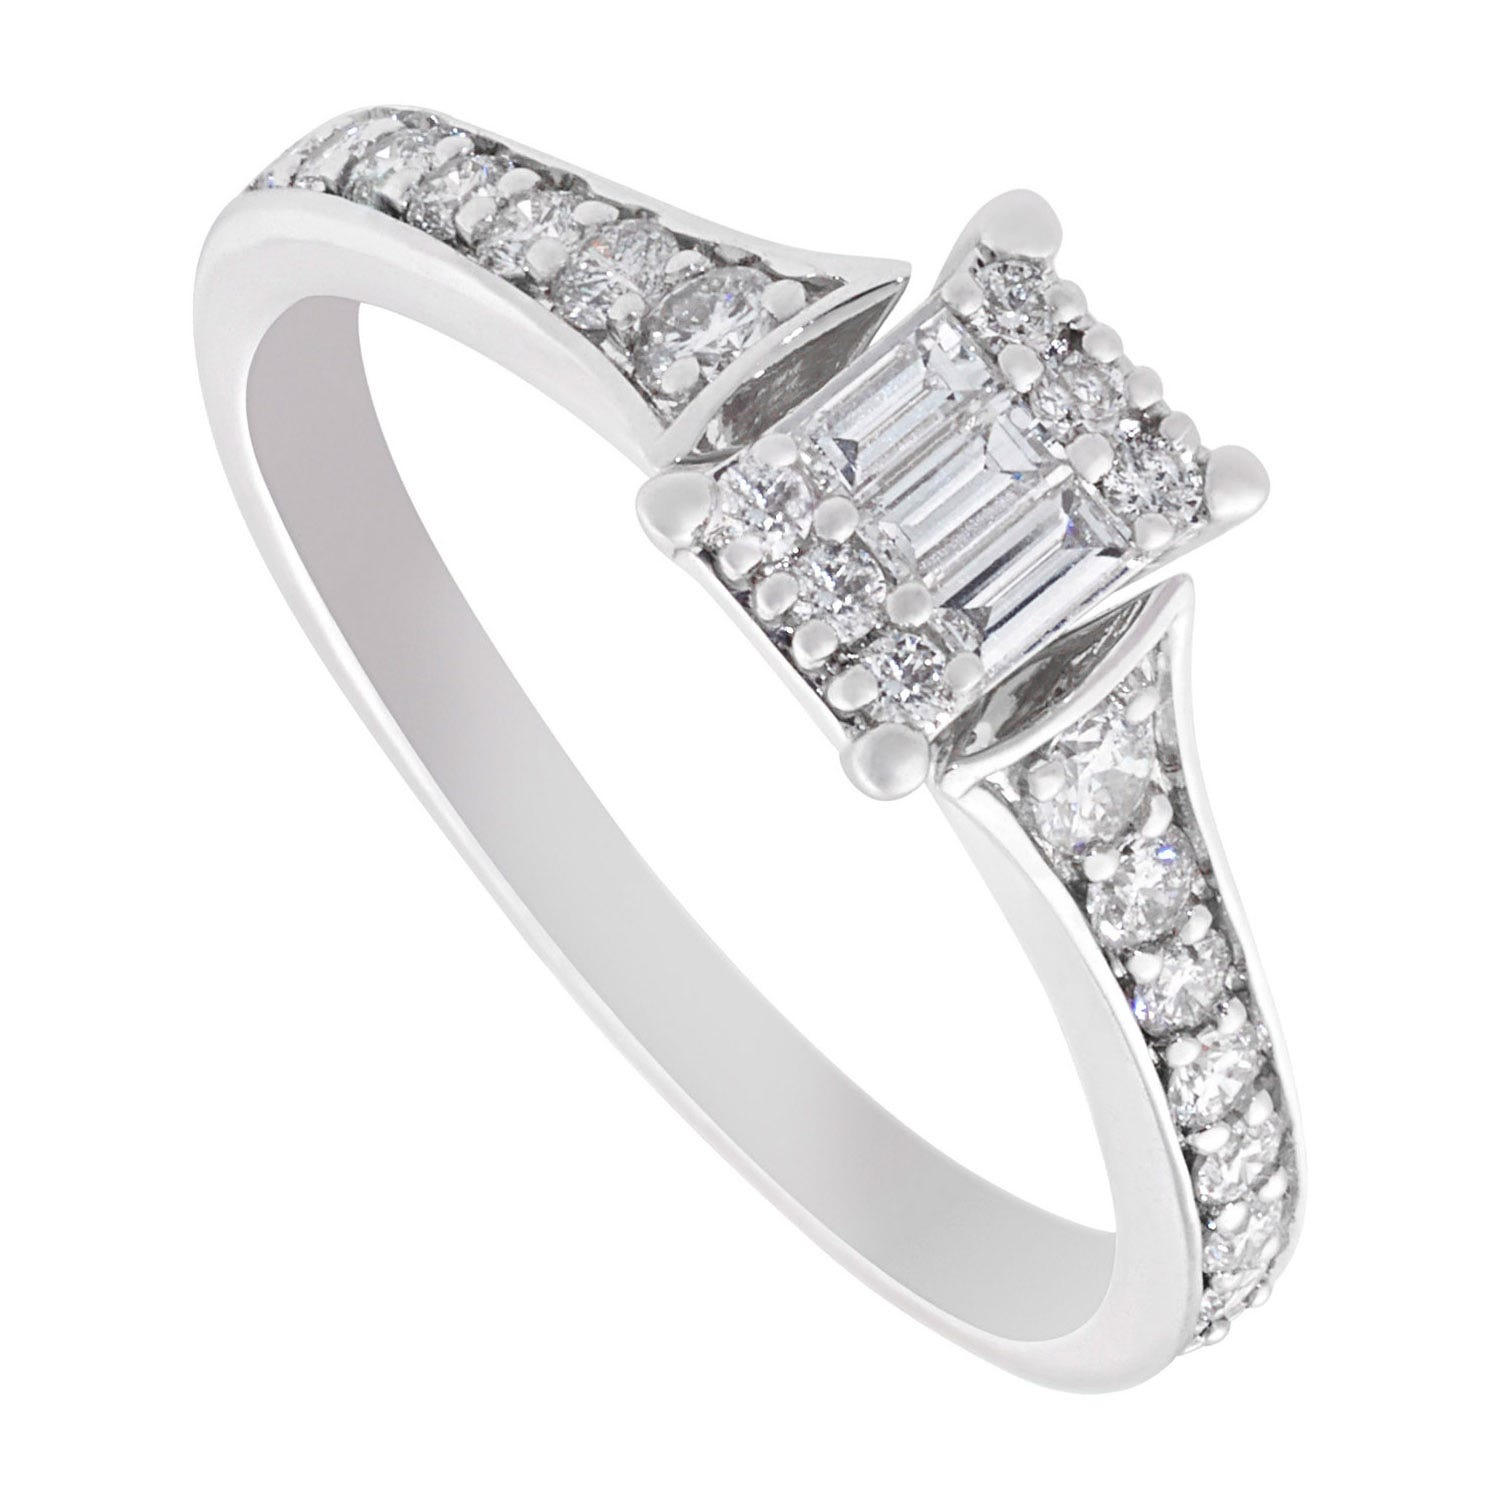 9ct white gold 0.44 carat baguette and round diamond ring